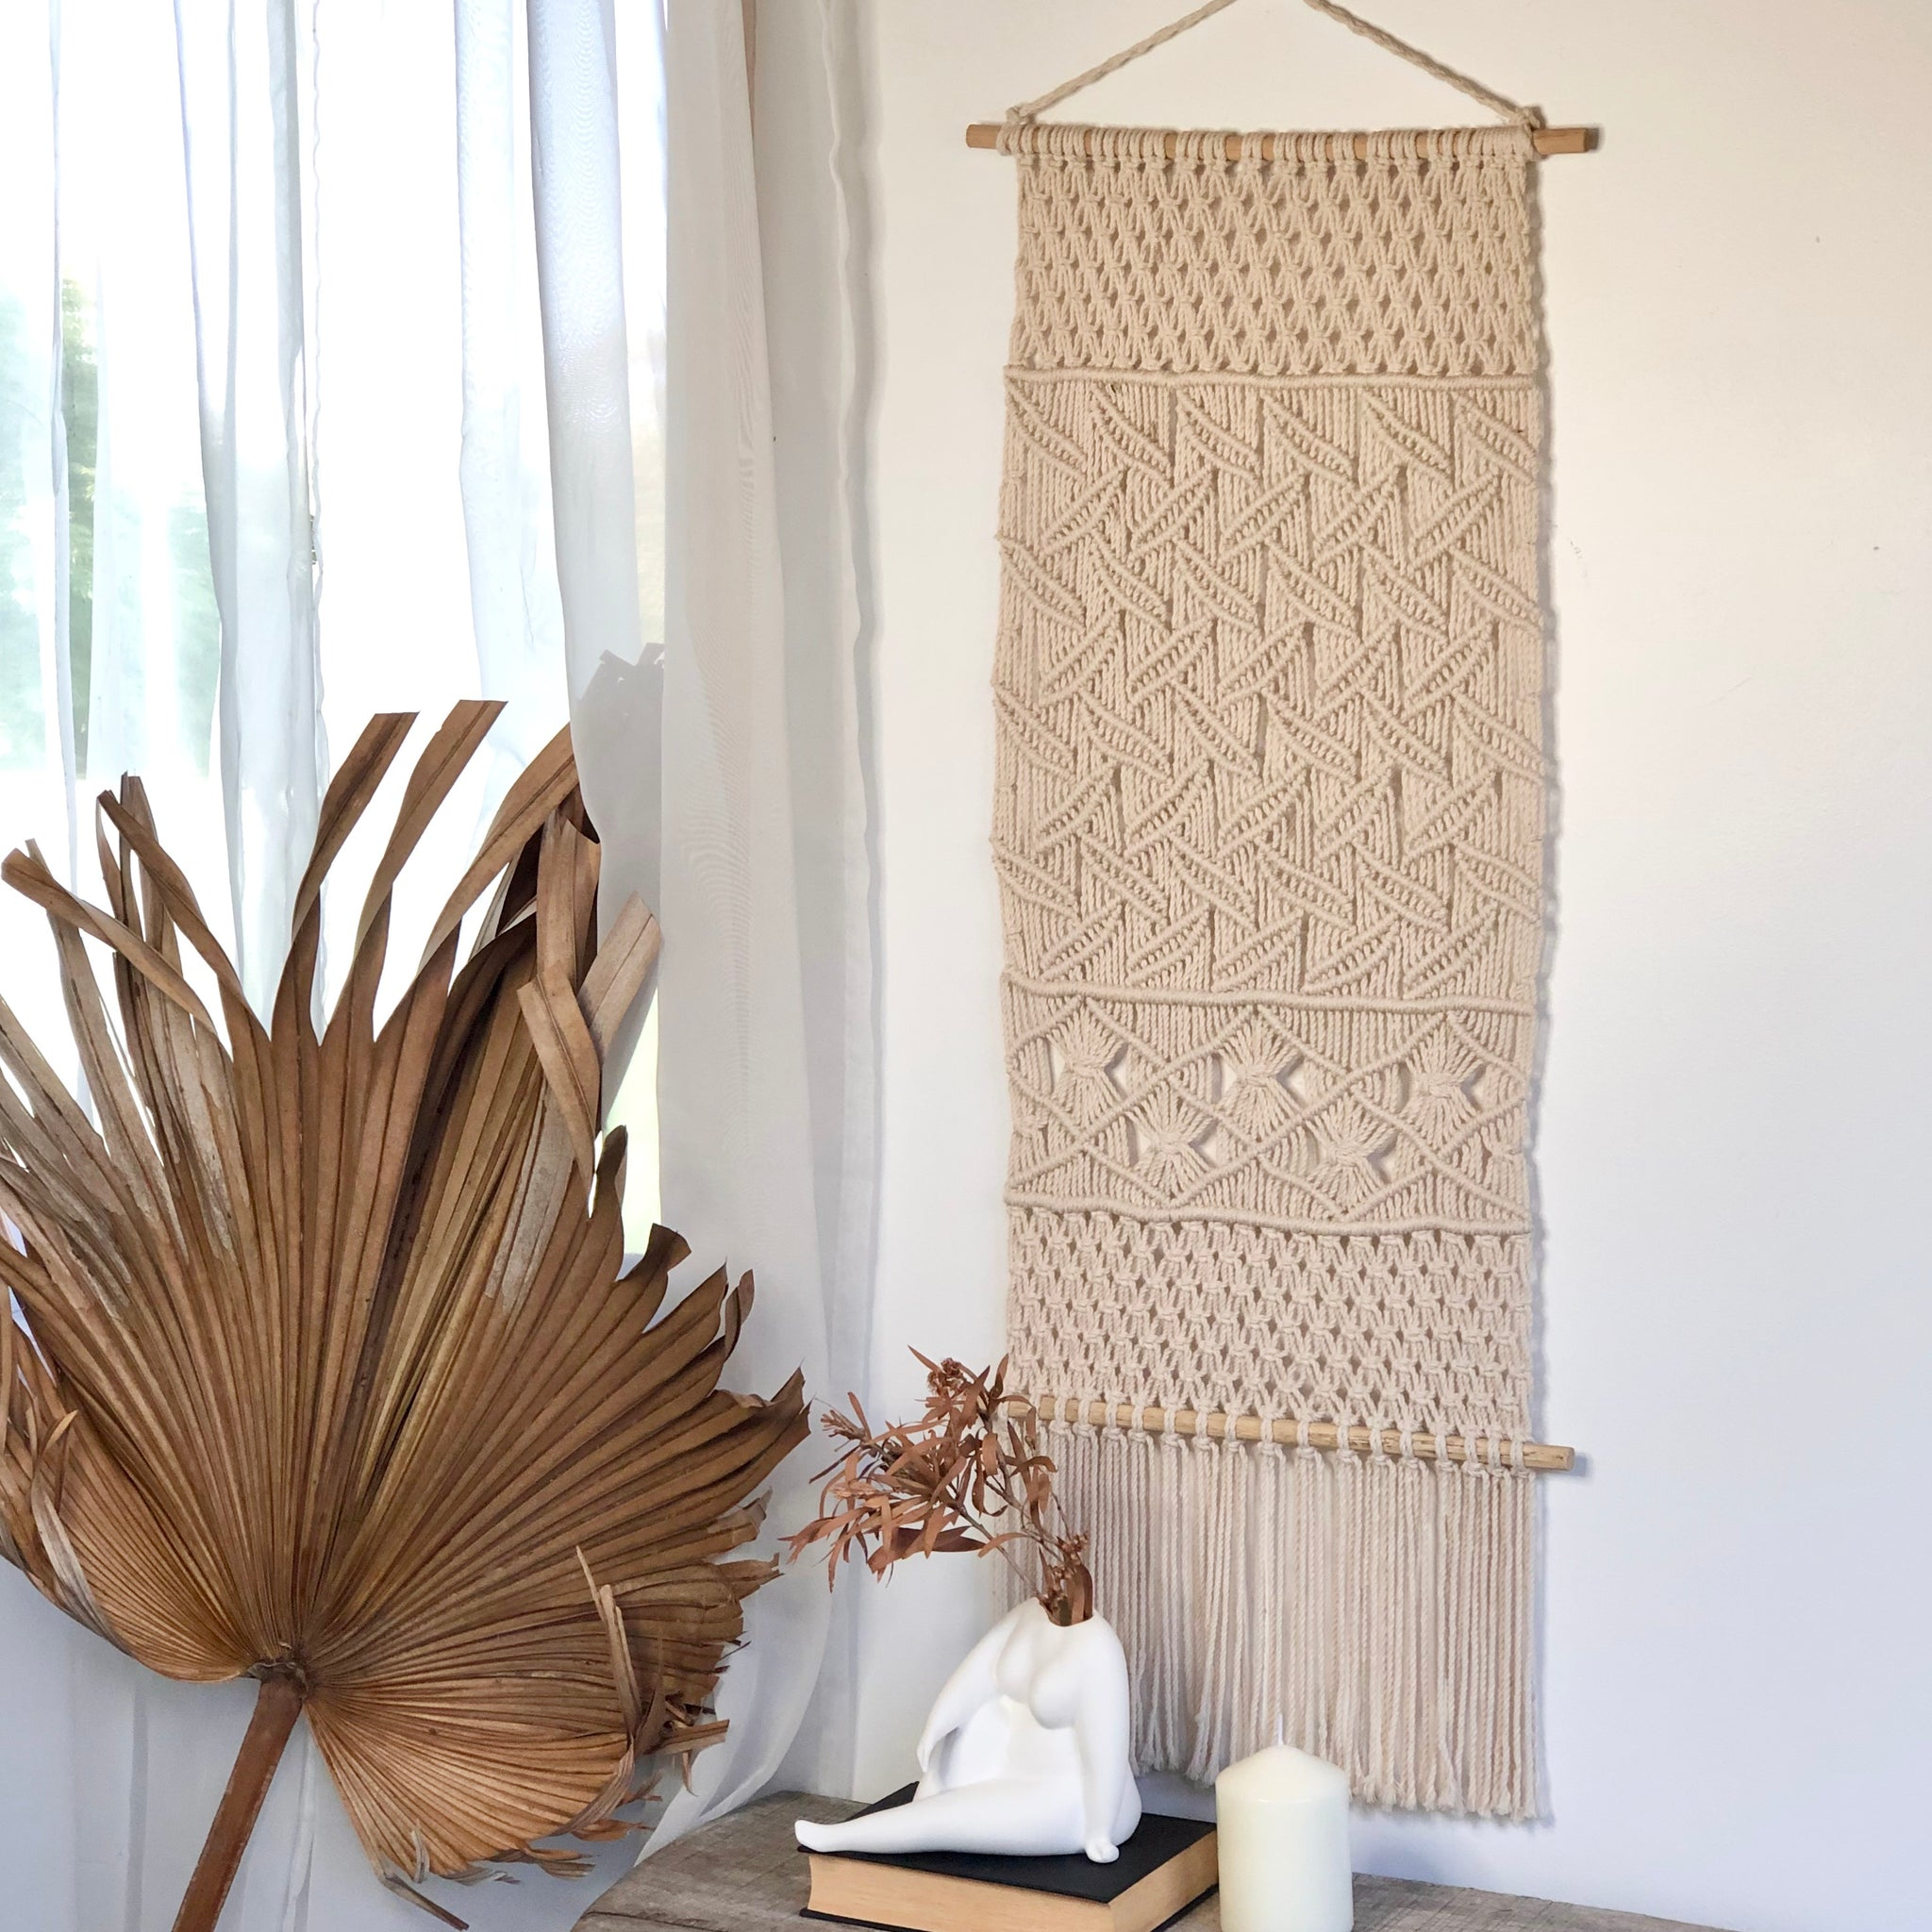 Gift, decor and crystal shop Australia: Hamptons macrame wall decor